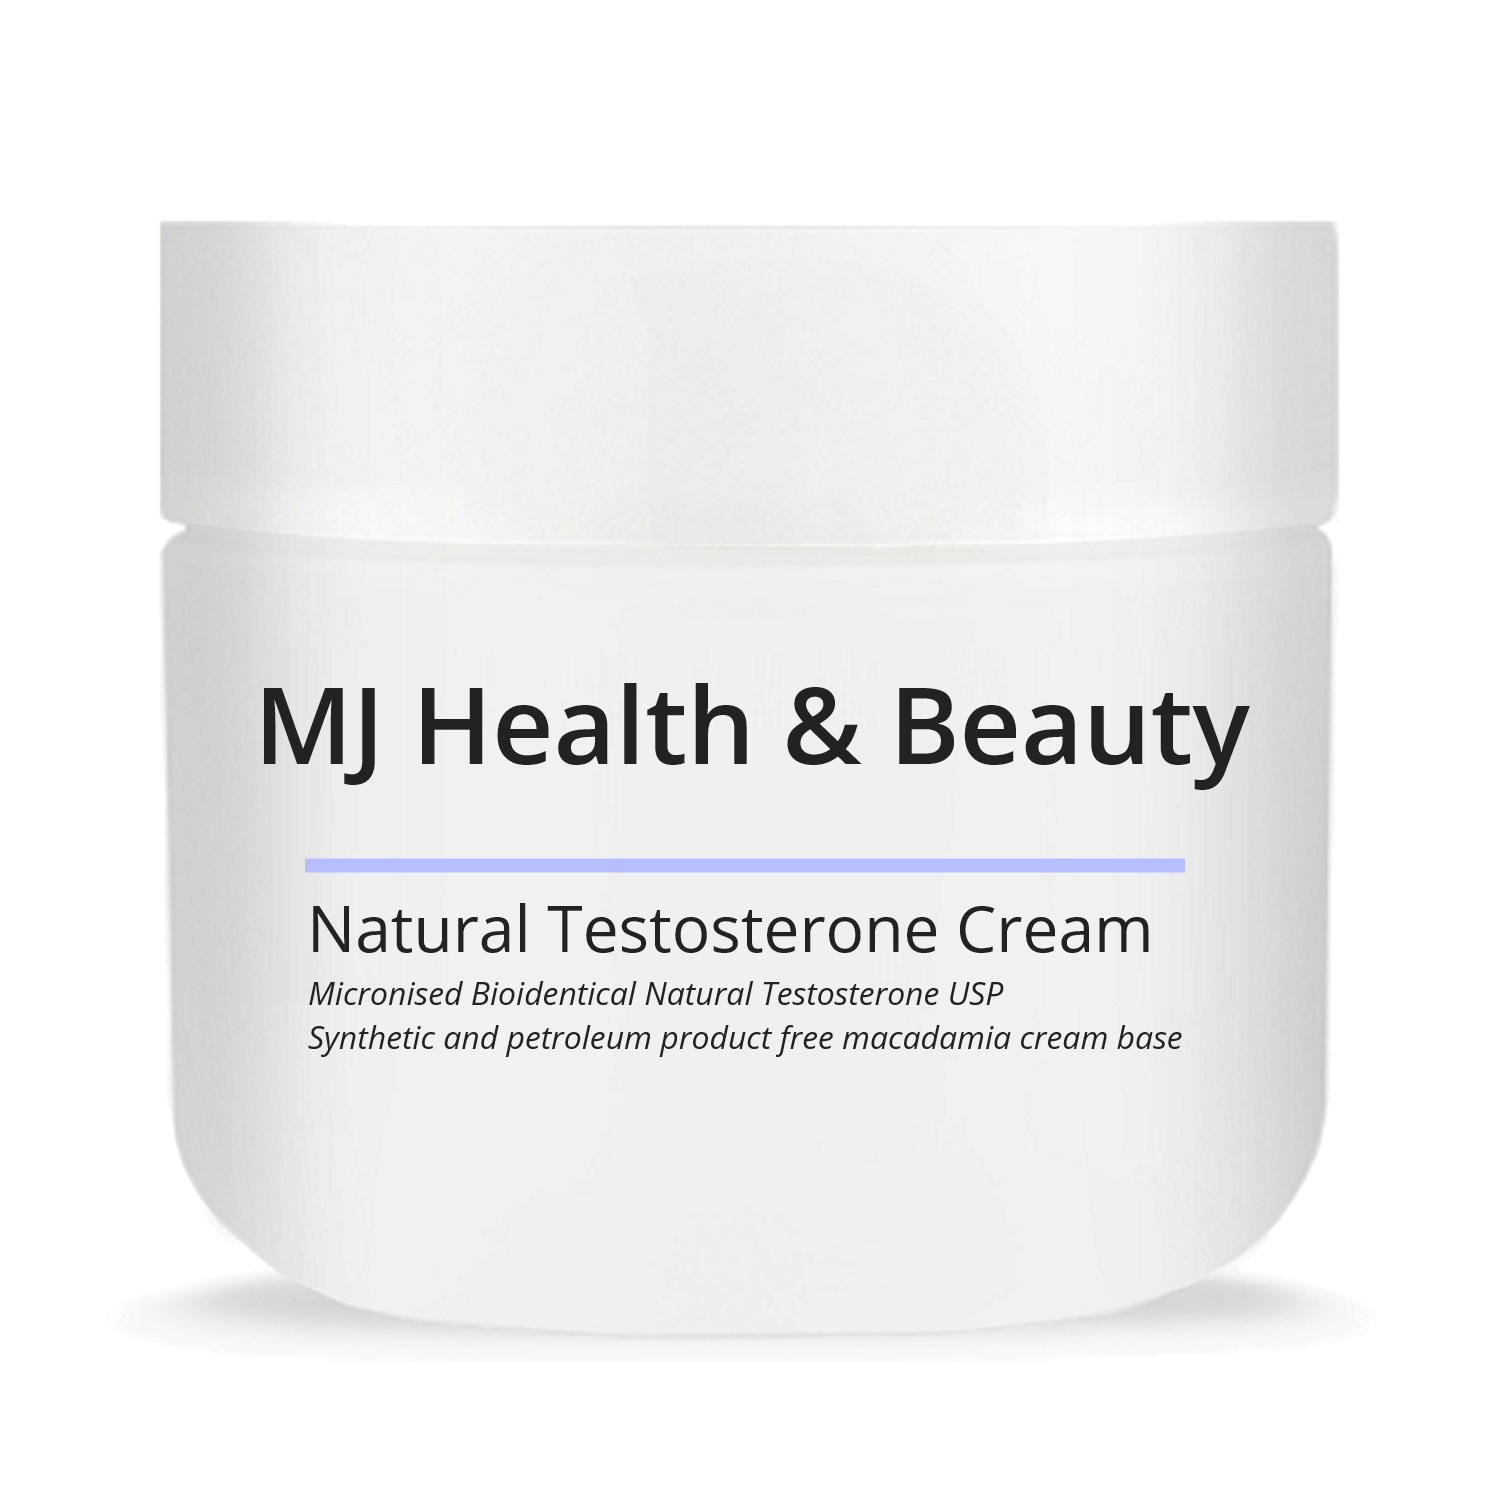 natural-testosterone-cream